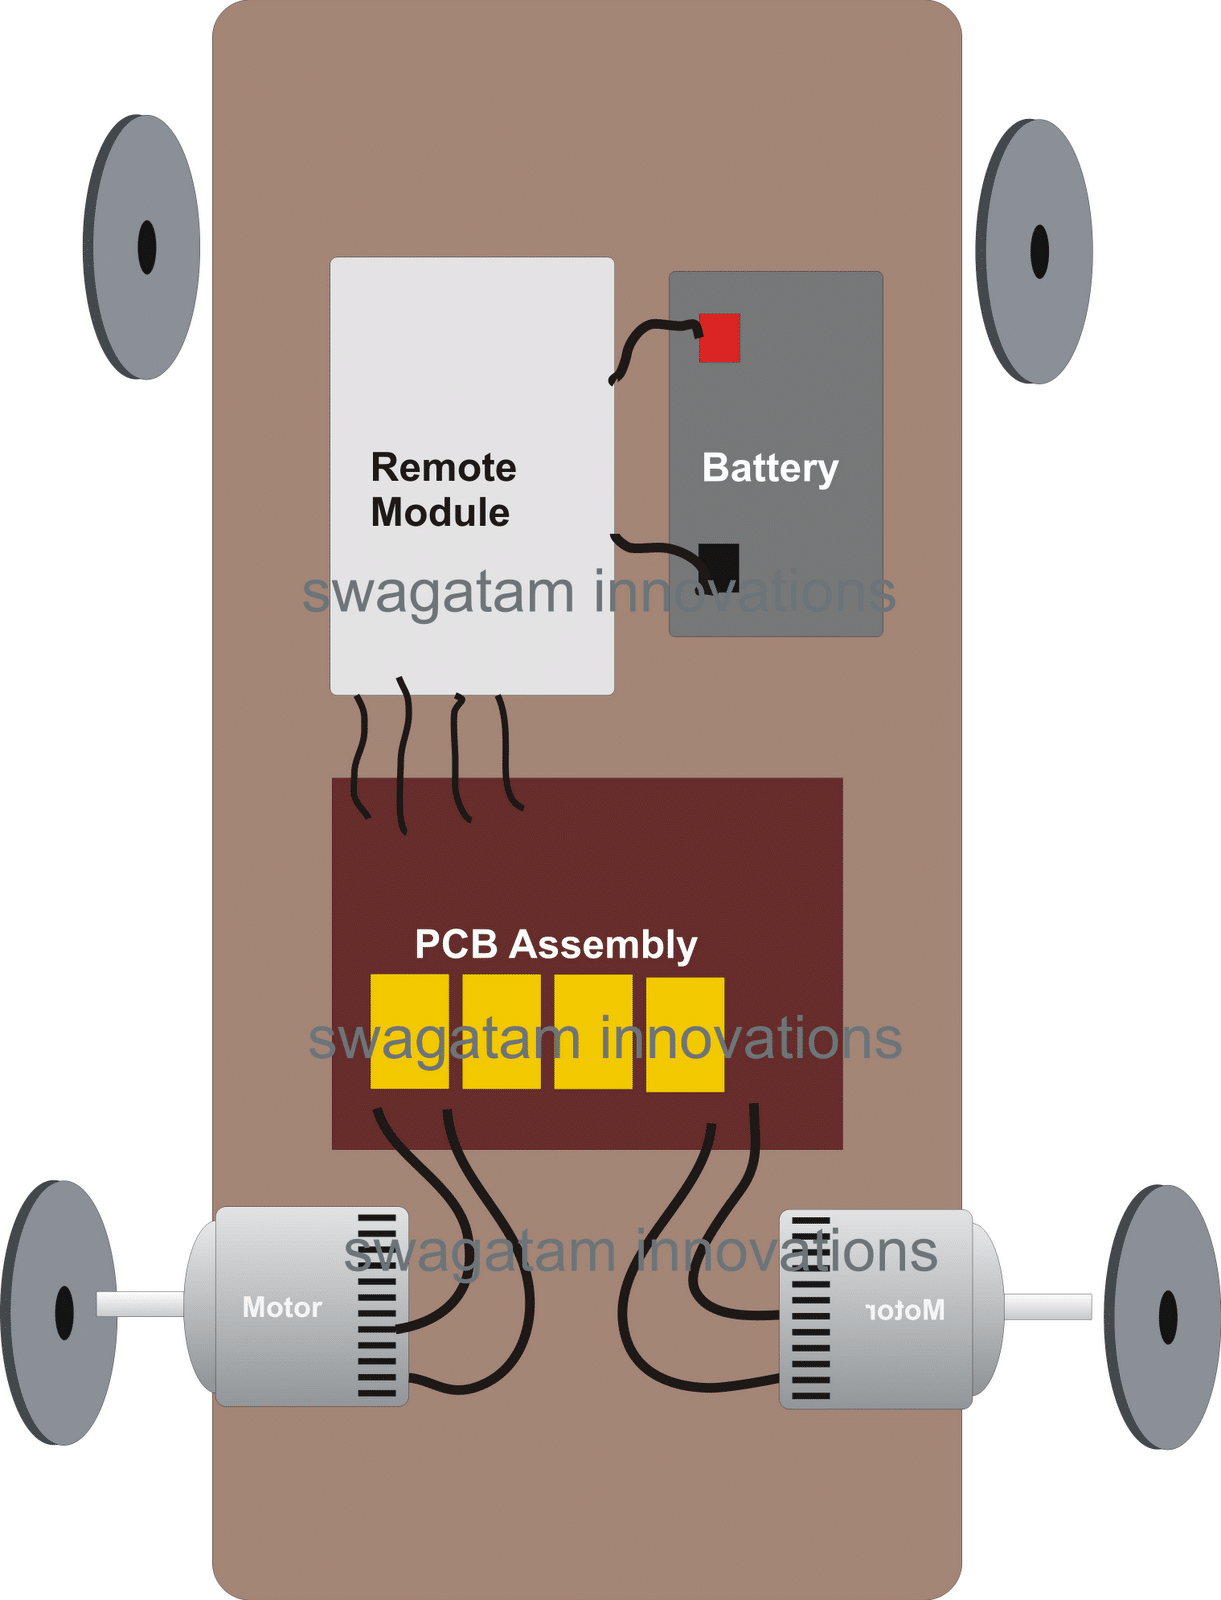 You may also want to learn how to make a heavy duty remote controlled trolley circuit for malls and retail shops